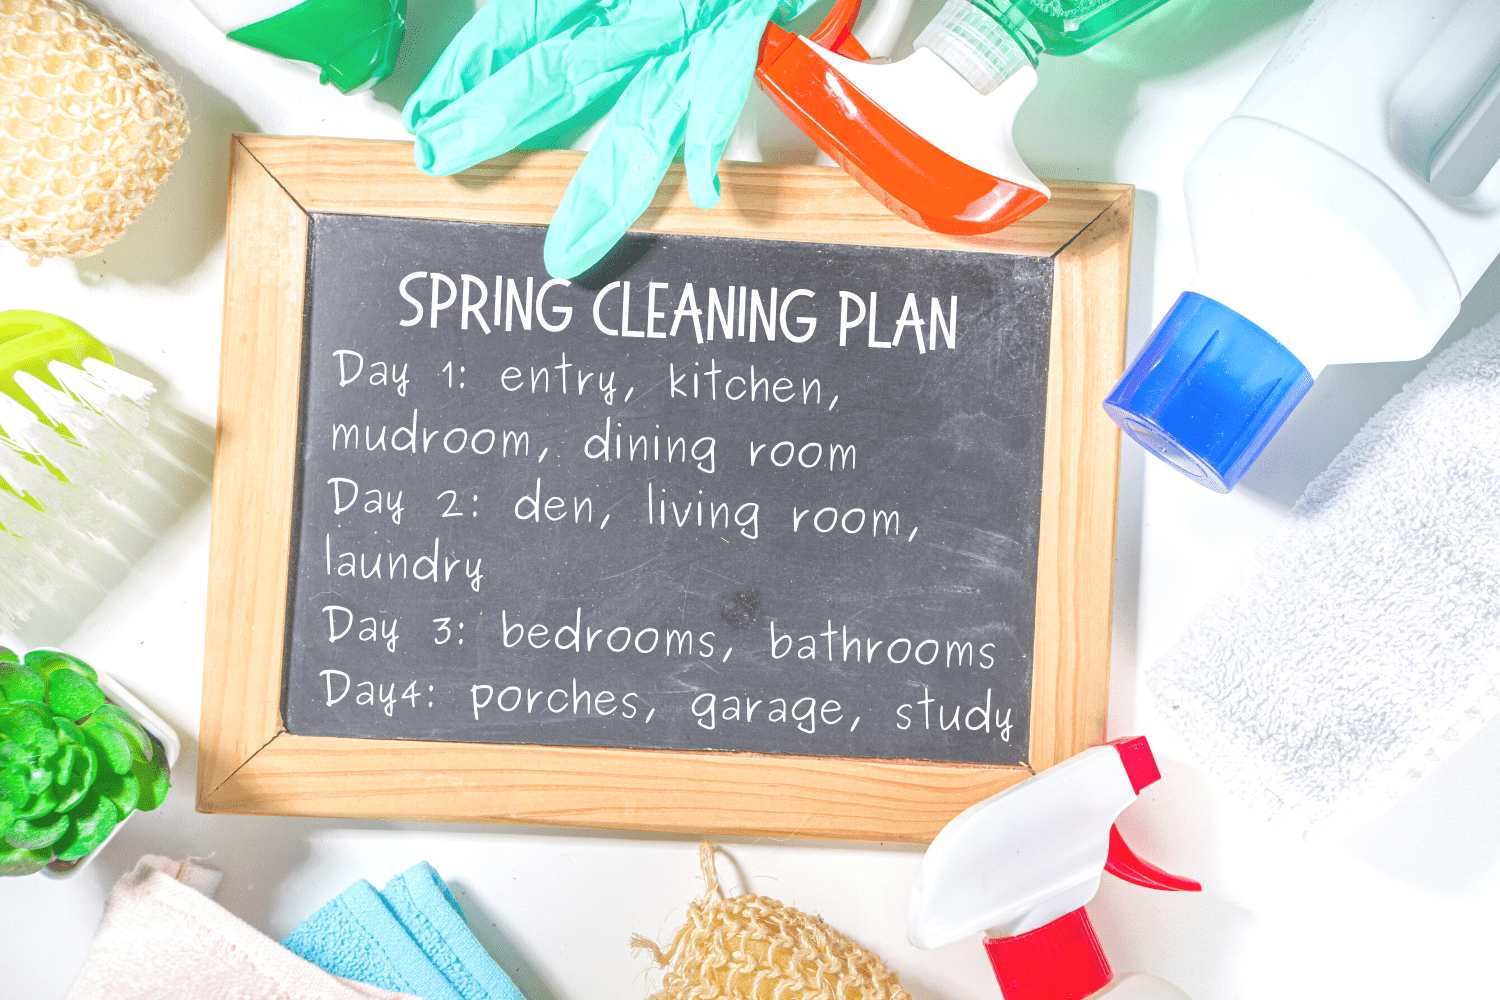 Making a plan helps you to get motivated to spring clean